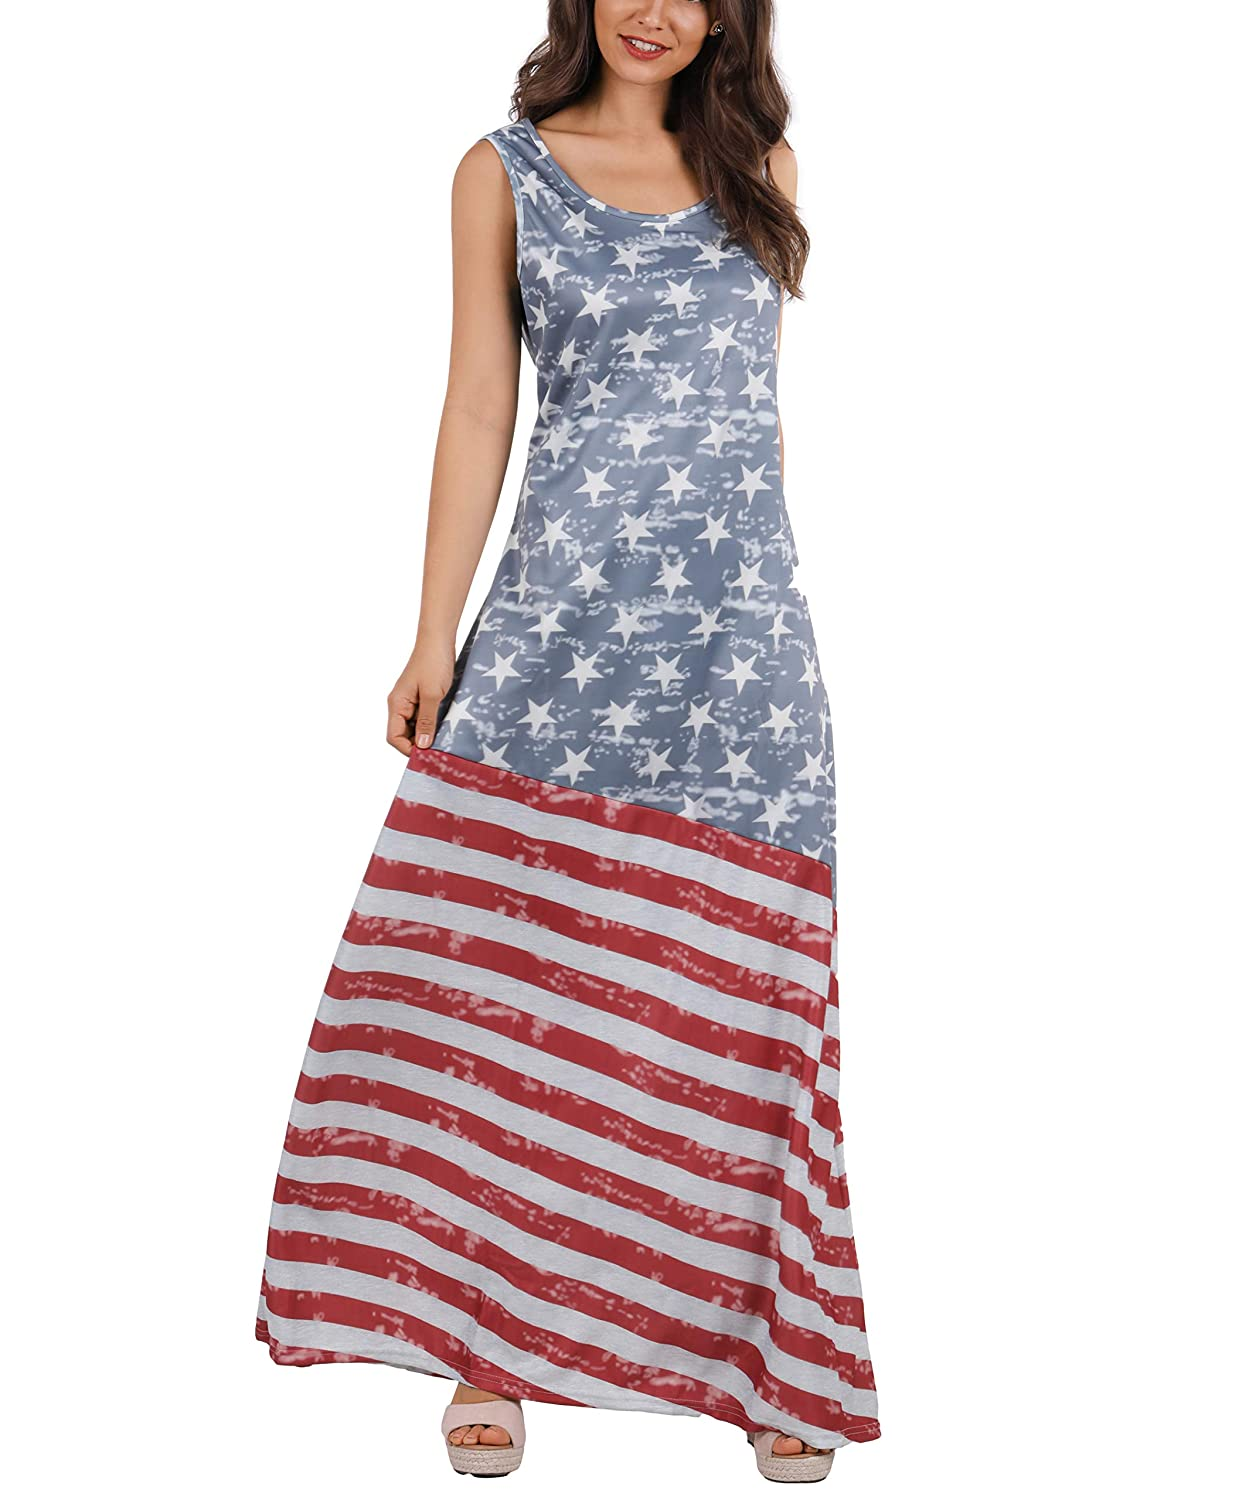 0cfa1f9126a Nulibenna Women s Summer Beach Sleeveless Tank Dress Strapless American Flag  Print Maxi Dress at Amazon Women s Clothing store